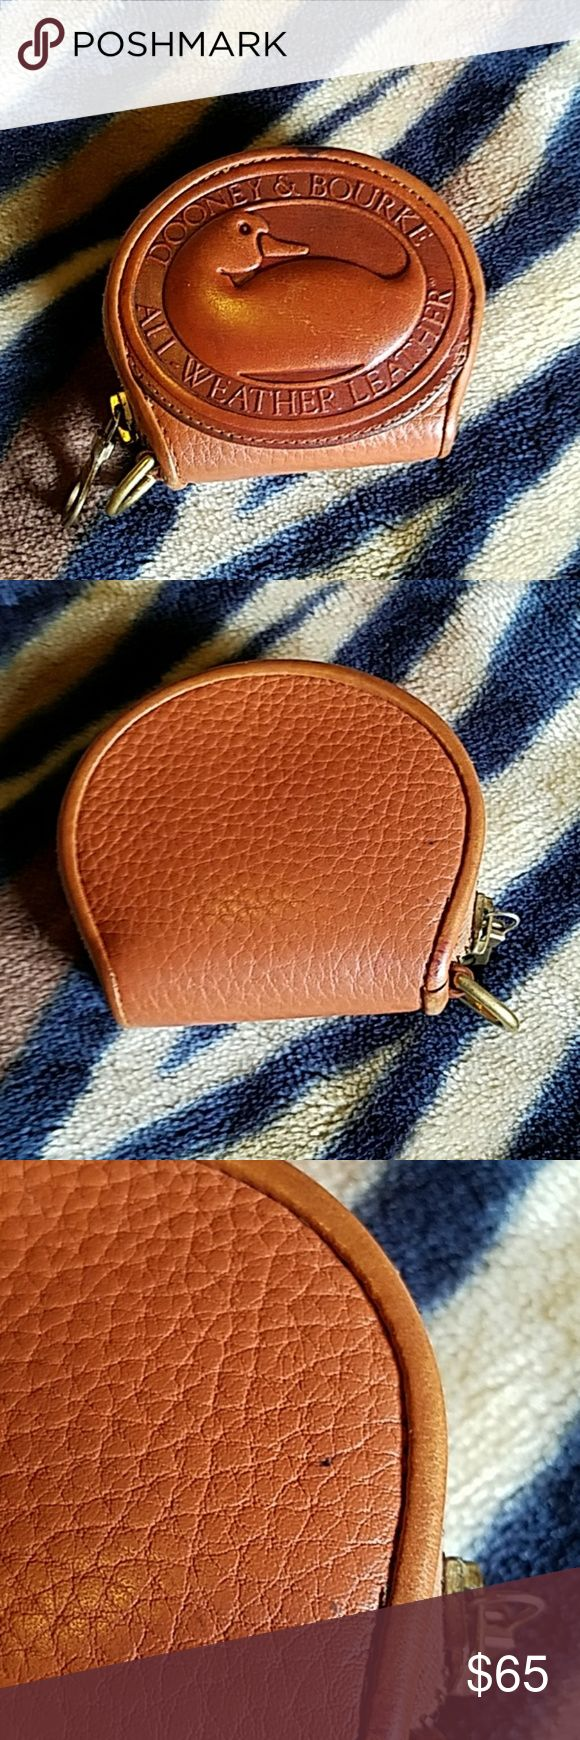 Dooney and Bourke Big Duck coin purse Dooney and Bourke Big Duck coin purse.  Tiny mark on back and small ink spot on trim near zipper.  GUC.  Tan all weather leather with British tan trim Dooney & Bourke Bags Wallets